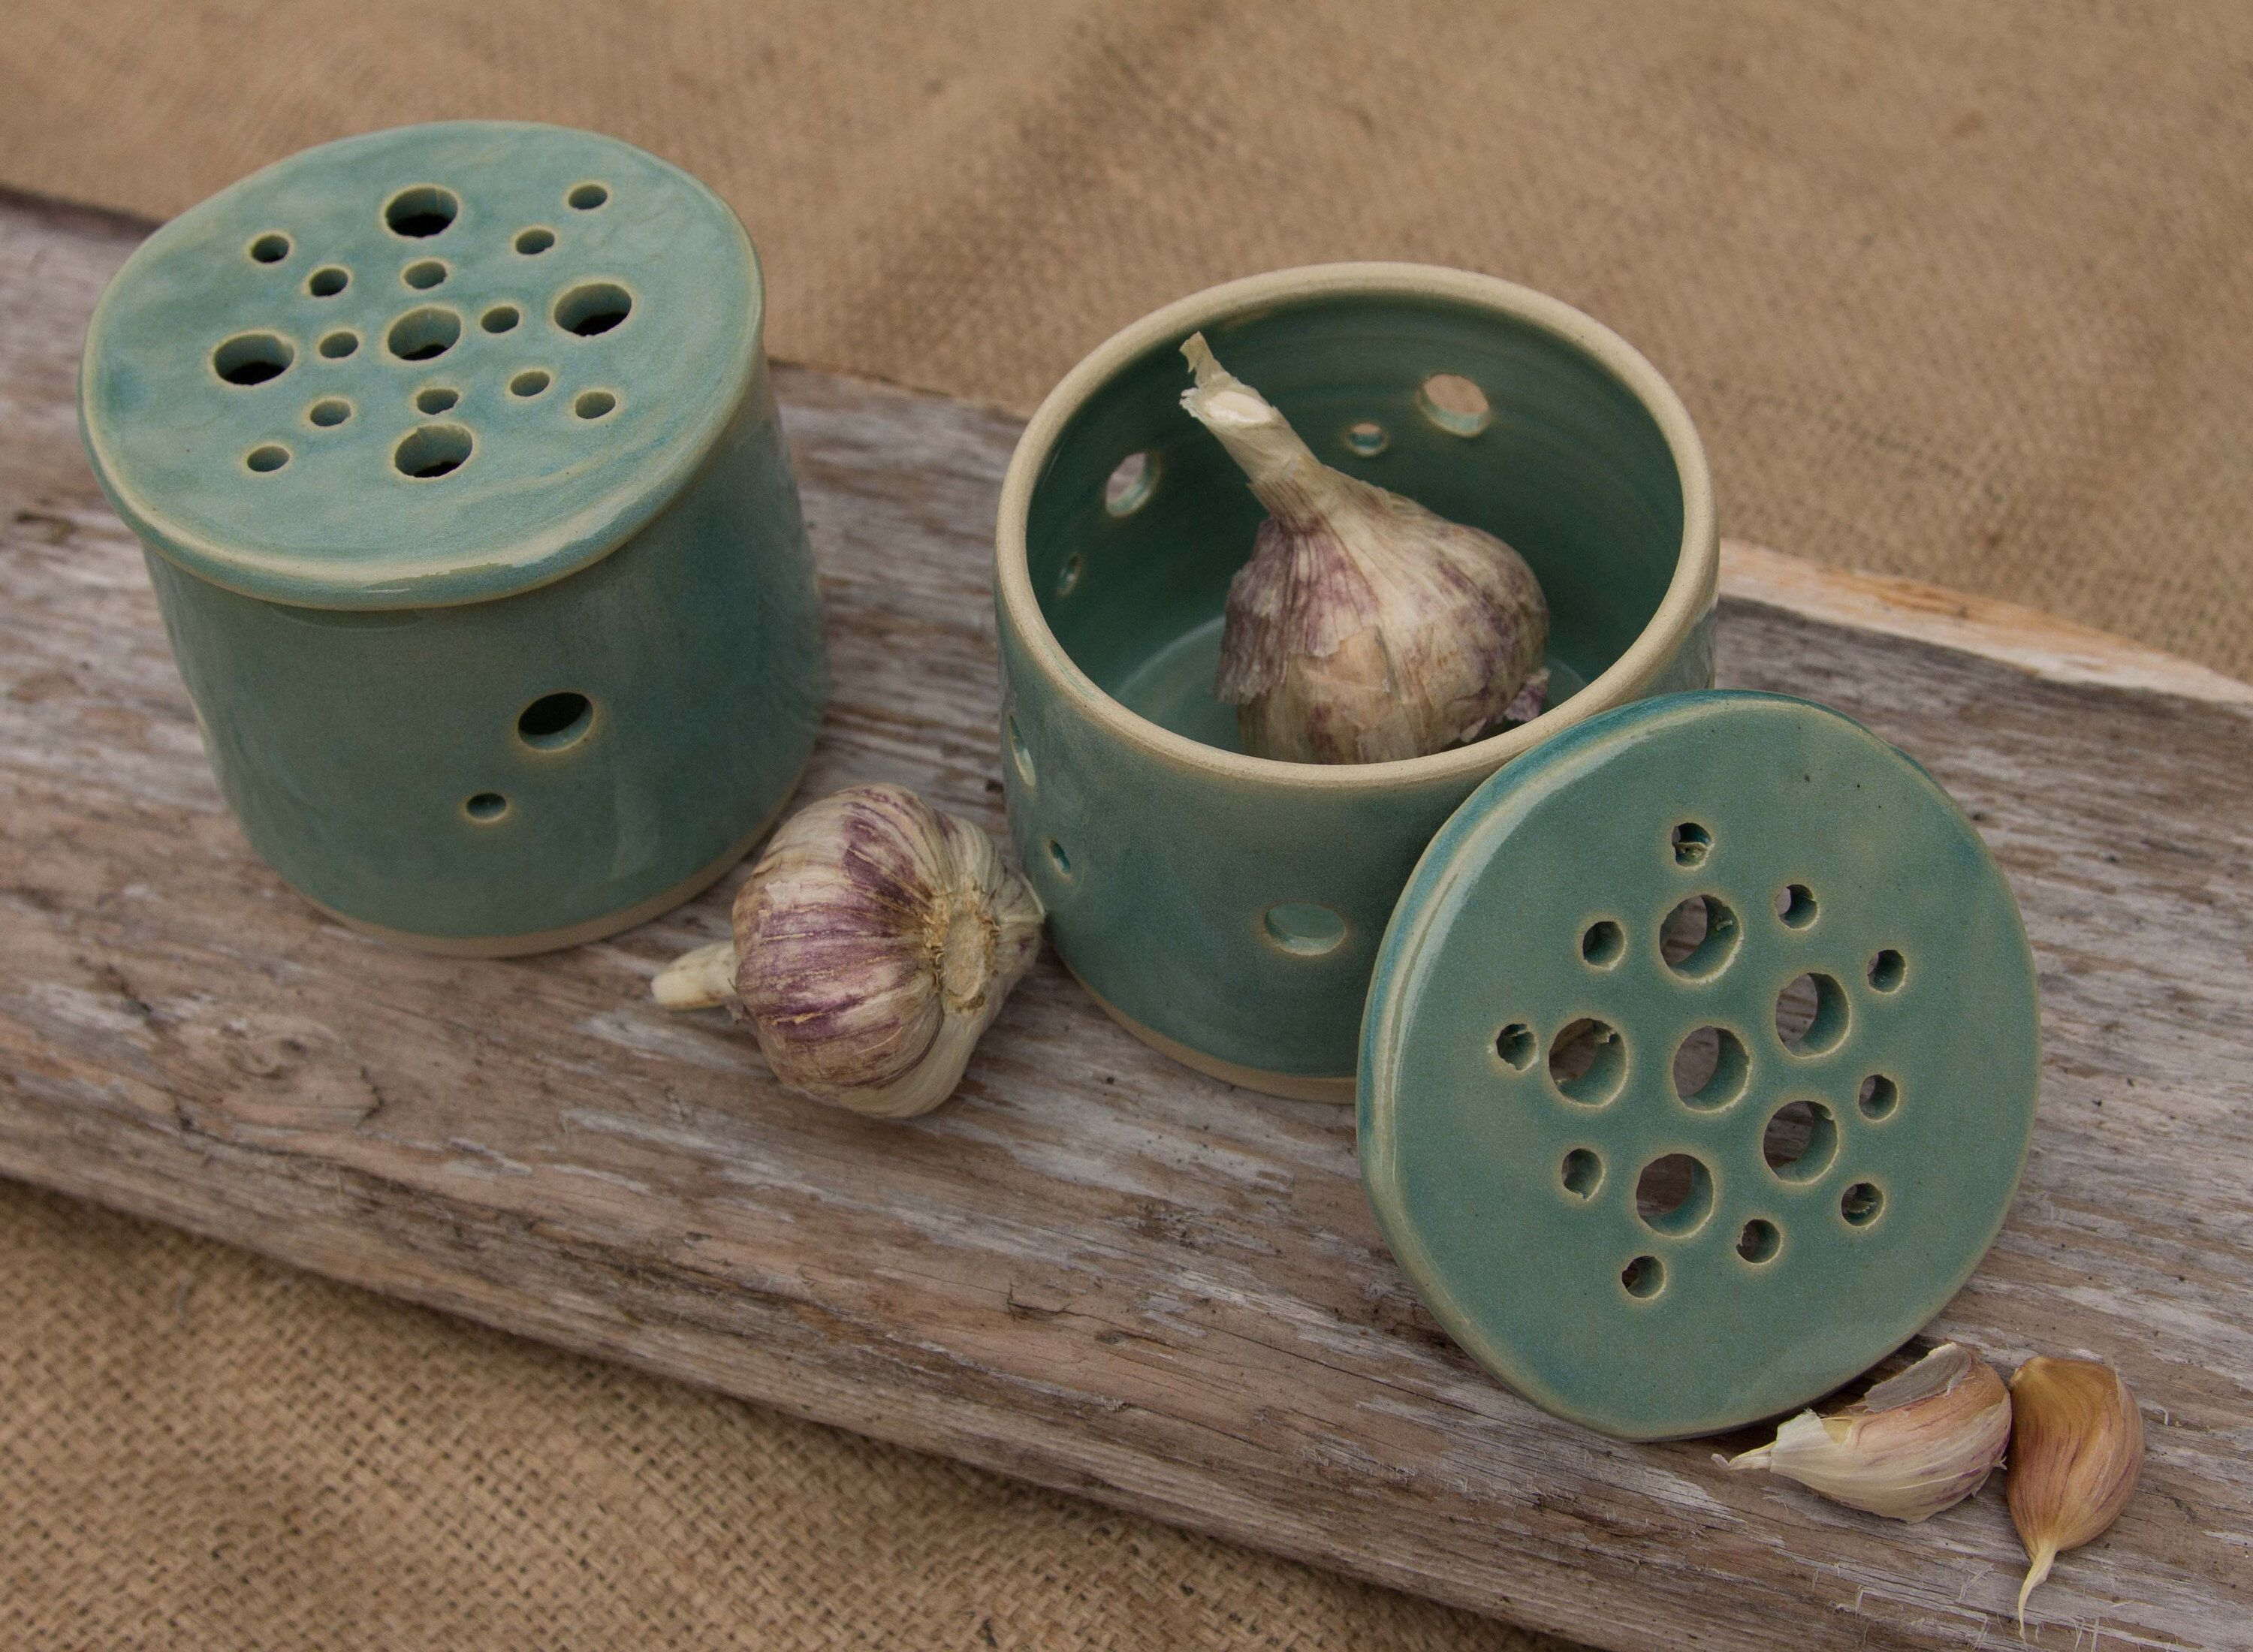 Ceramic Pottery Garlic Holder | Teal | White | Blue | Green | Handmade on Haida Gwaii #ceramicpottery